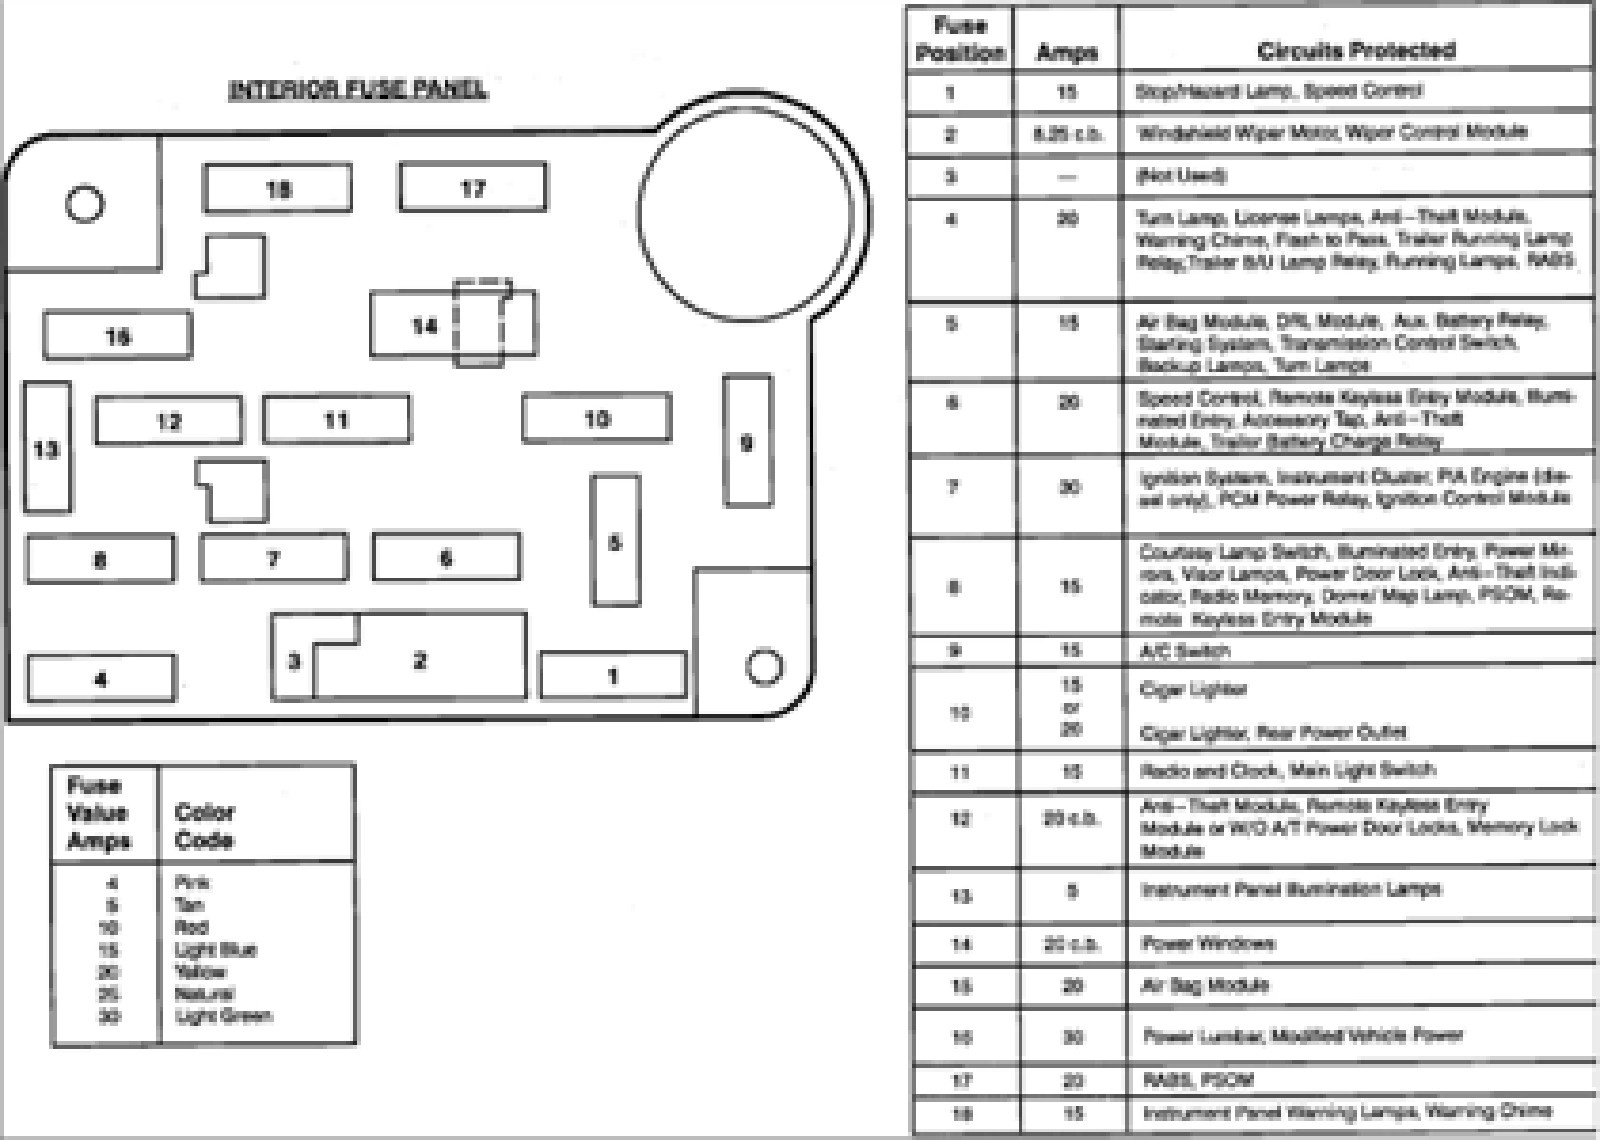 1997 ford crown victoria fuse box detailed schematics diagram rh  mrskindsclass com 05 ford crown victoria